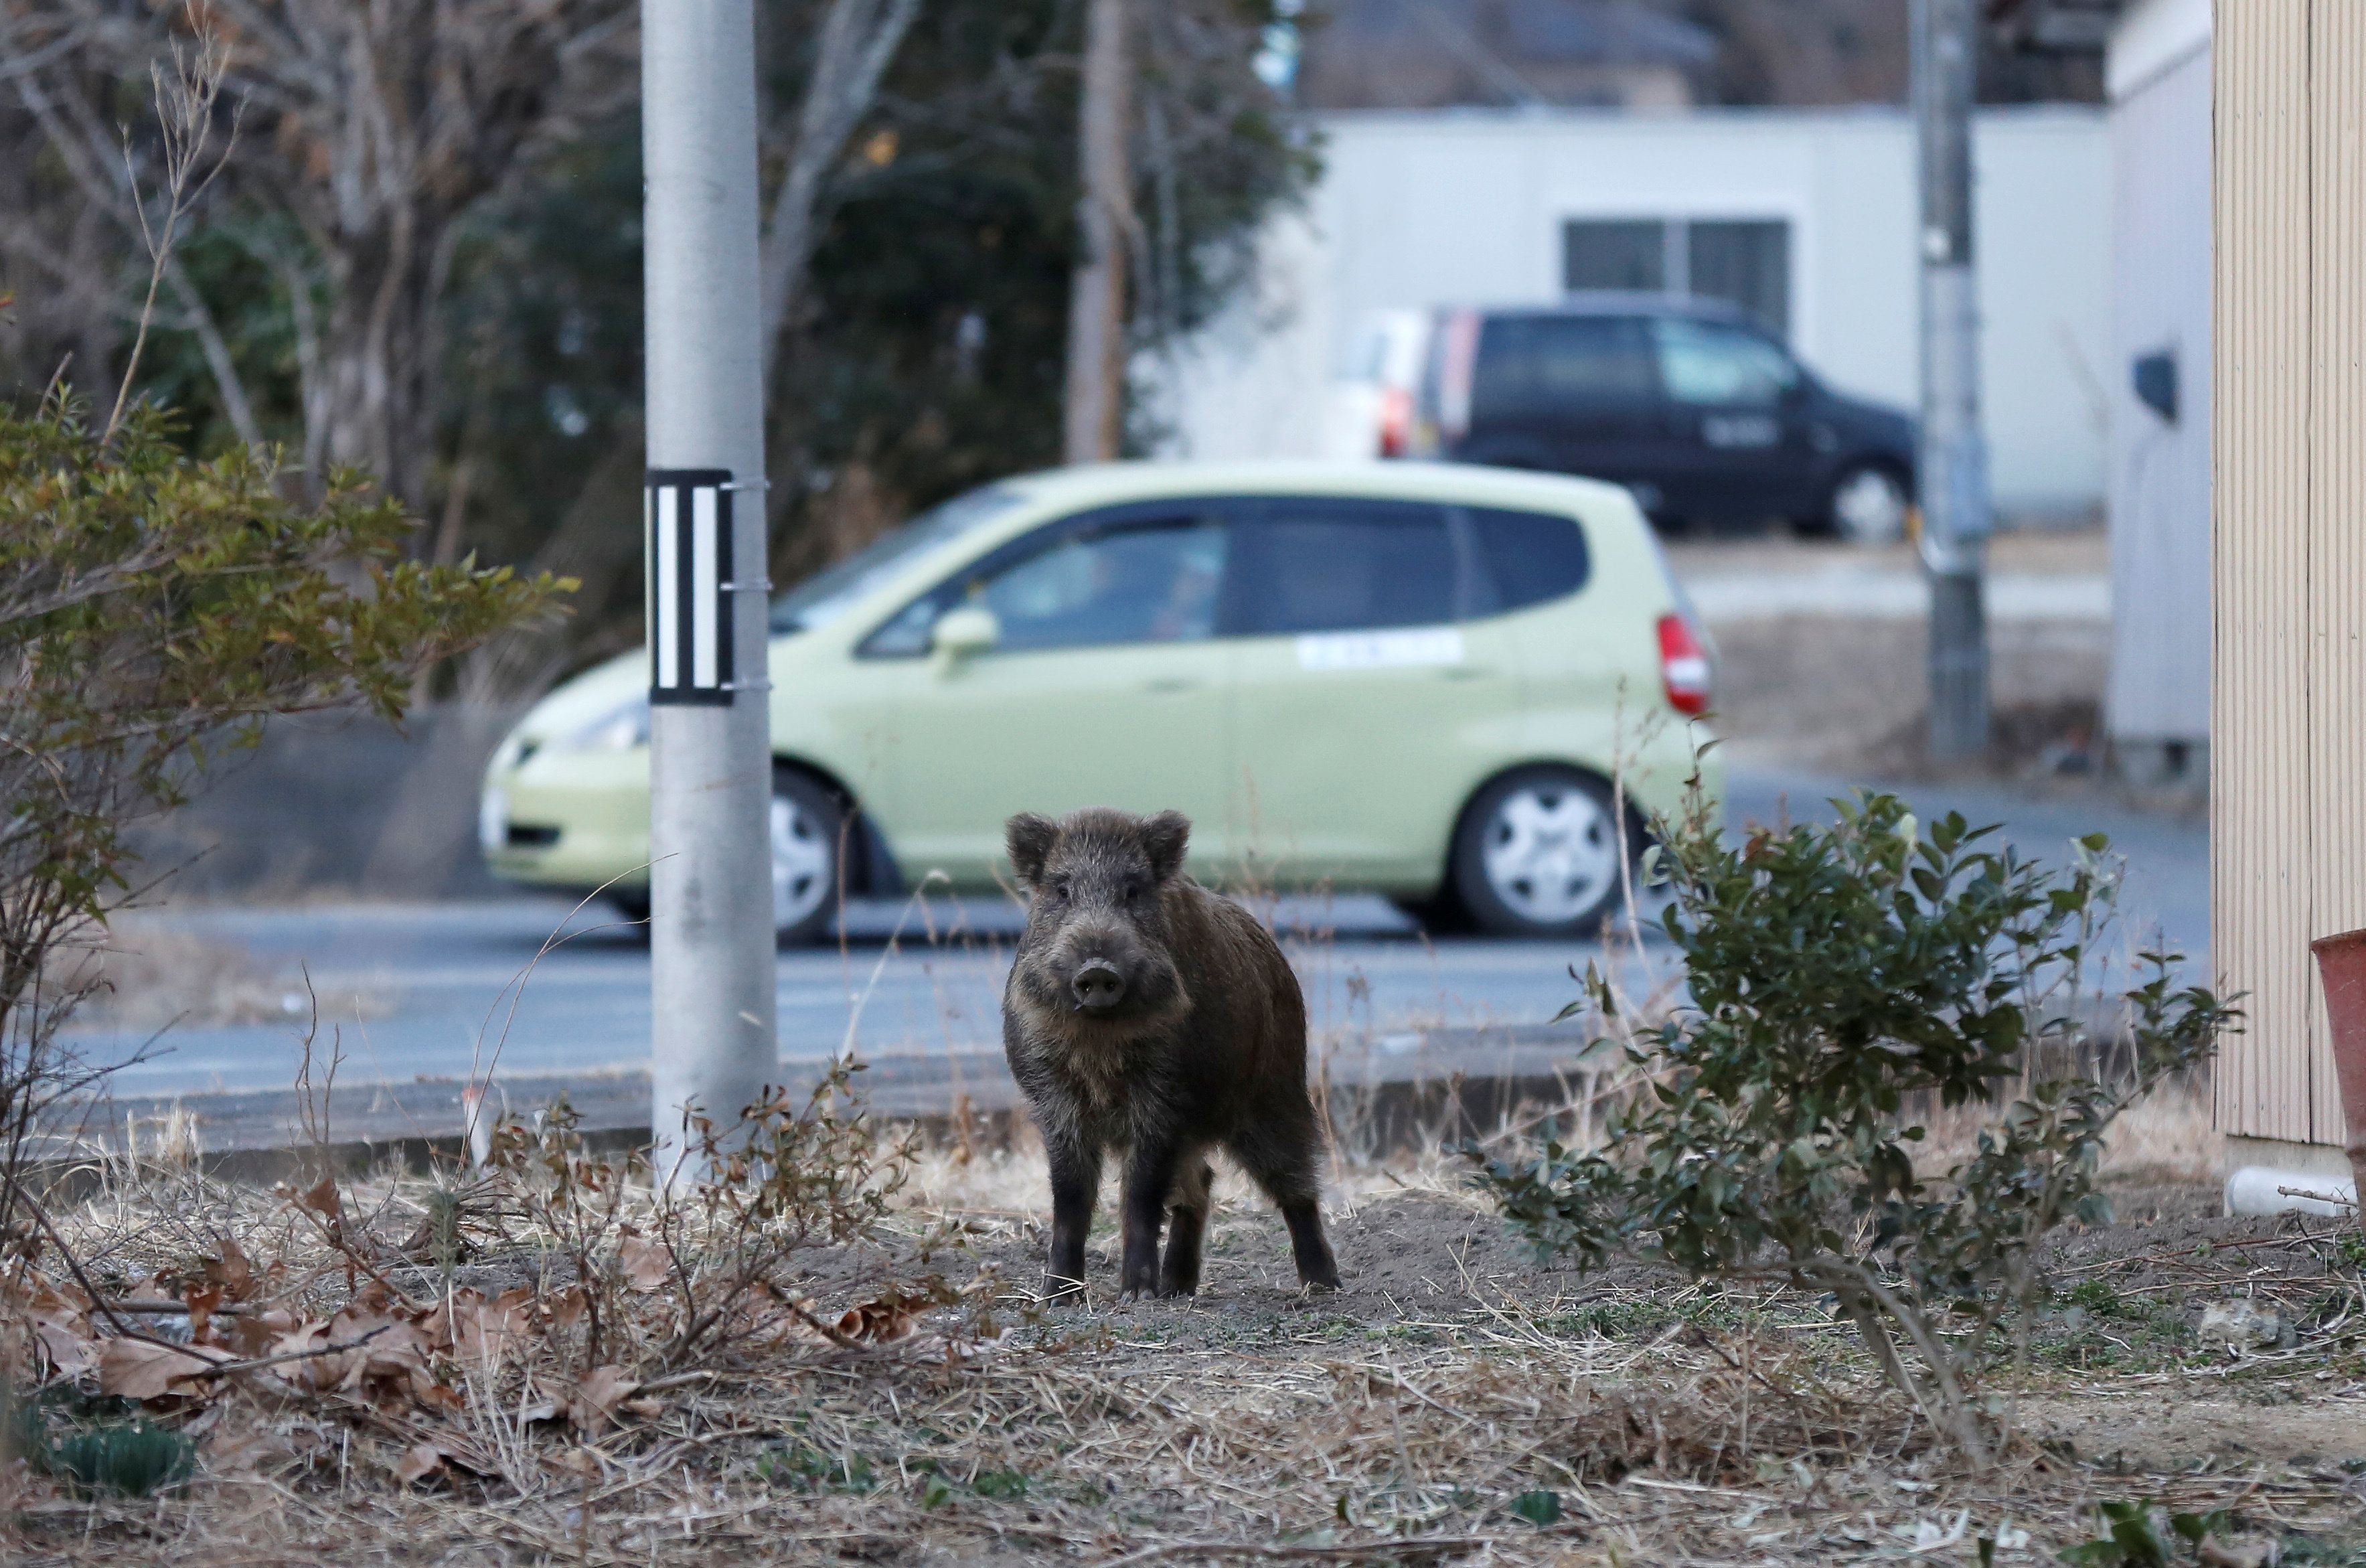 A wild boar is seen at a residential area in an evacuation zone near Tokyo Electric Power Co's (TEPCO) tsunami-crippled Fukushima Daiichi nuclear power plant in Namie town, Fukushima prefecture, Japan, March 1, 2017. Picture taken March 1, 2017.   REUTERS/Toru Hanai